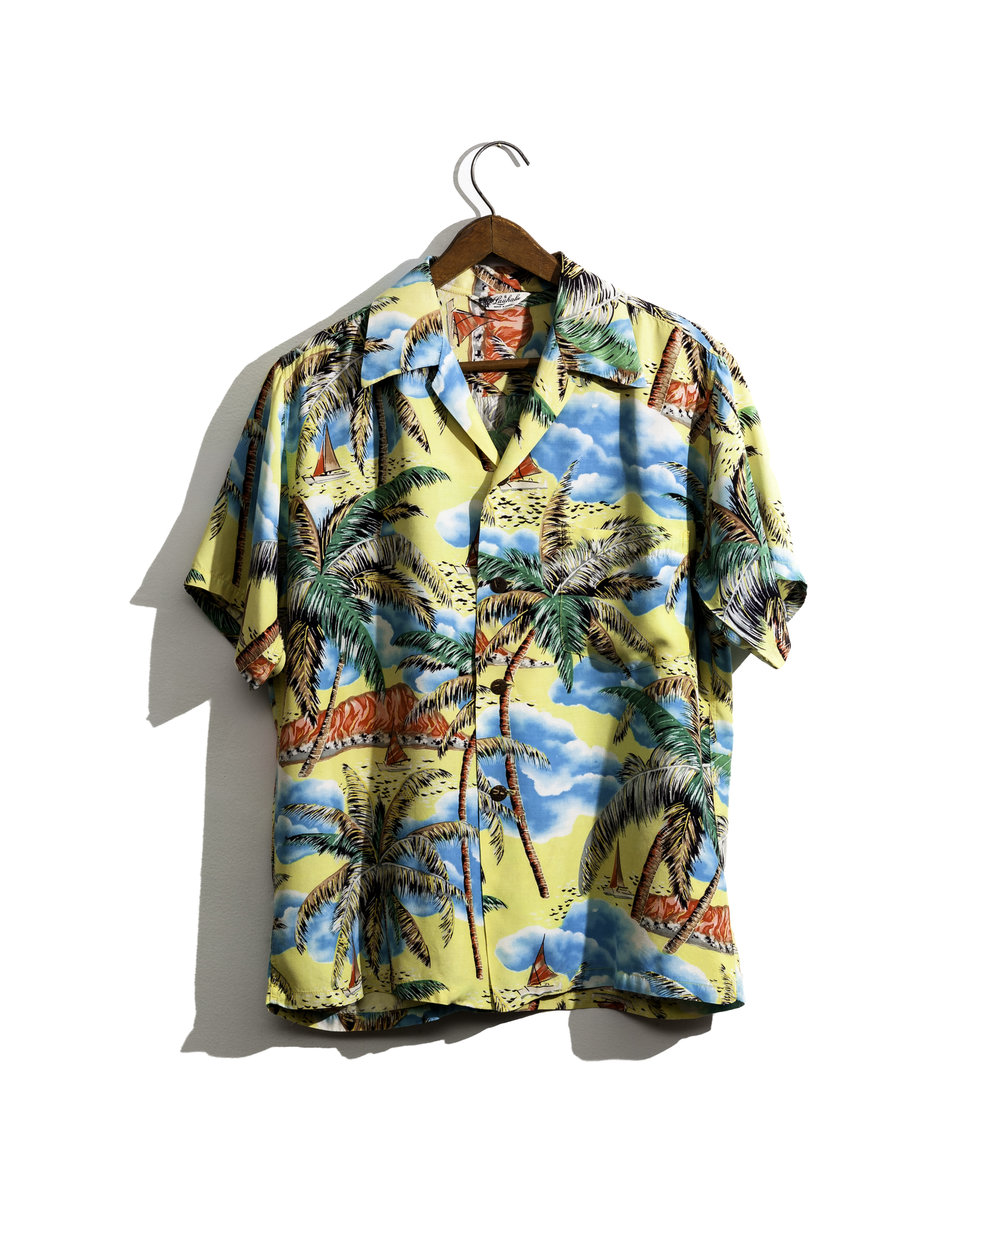 1950s Cold Rayon Tropical Print Shirt